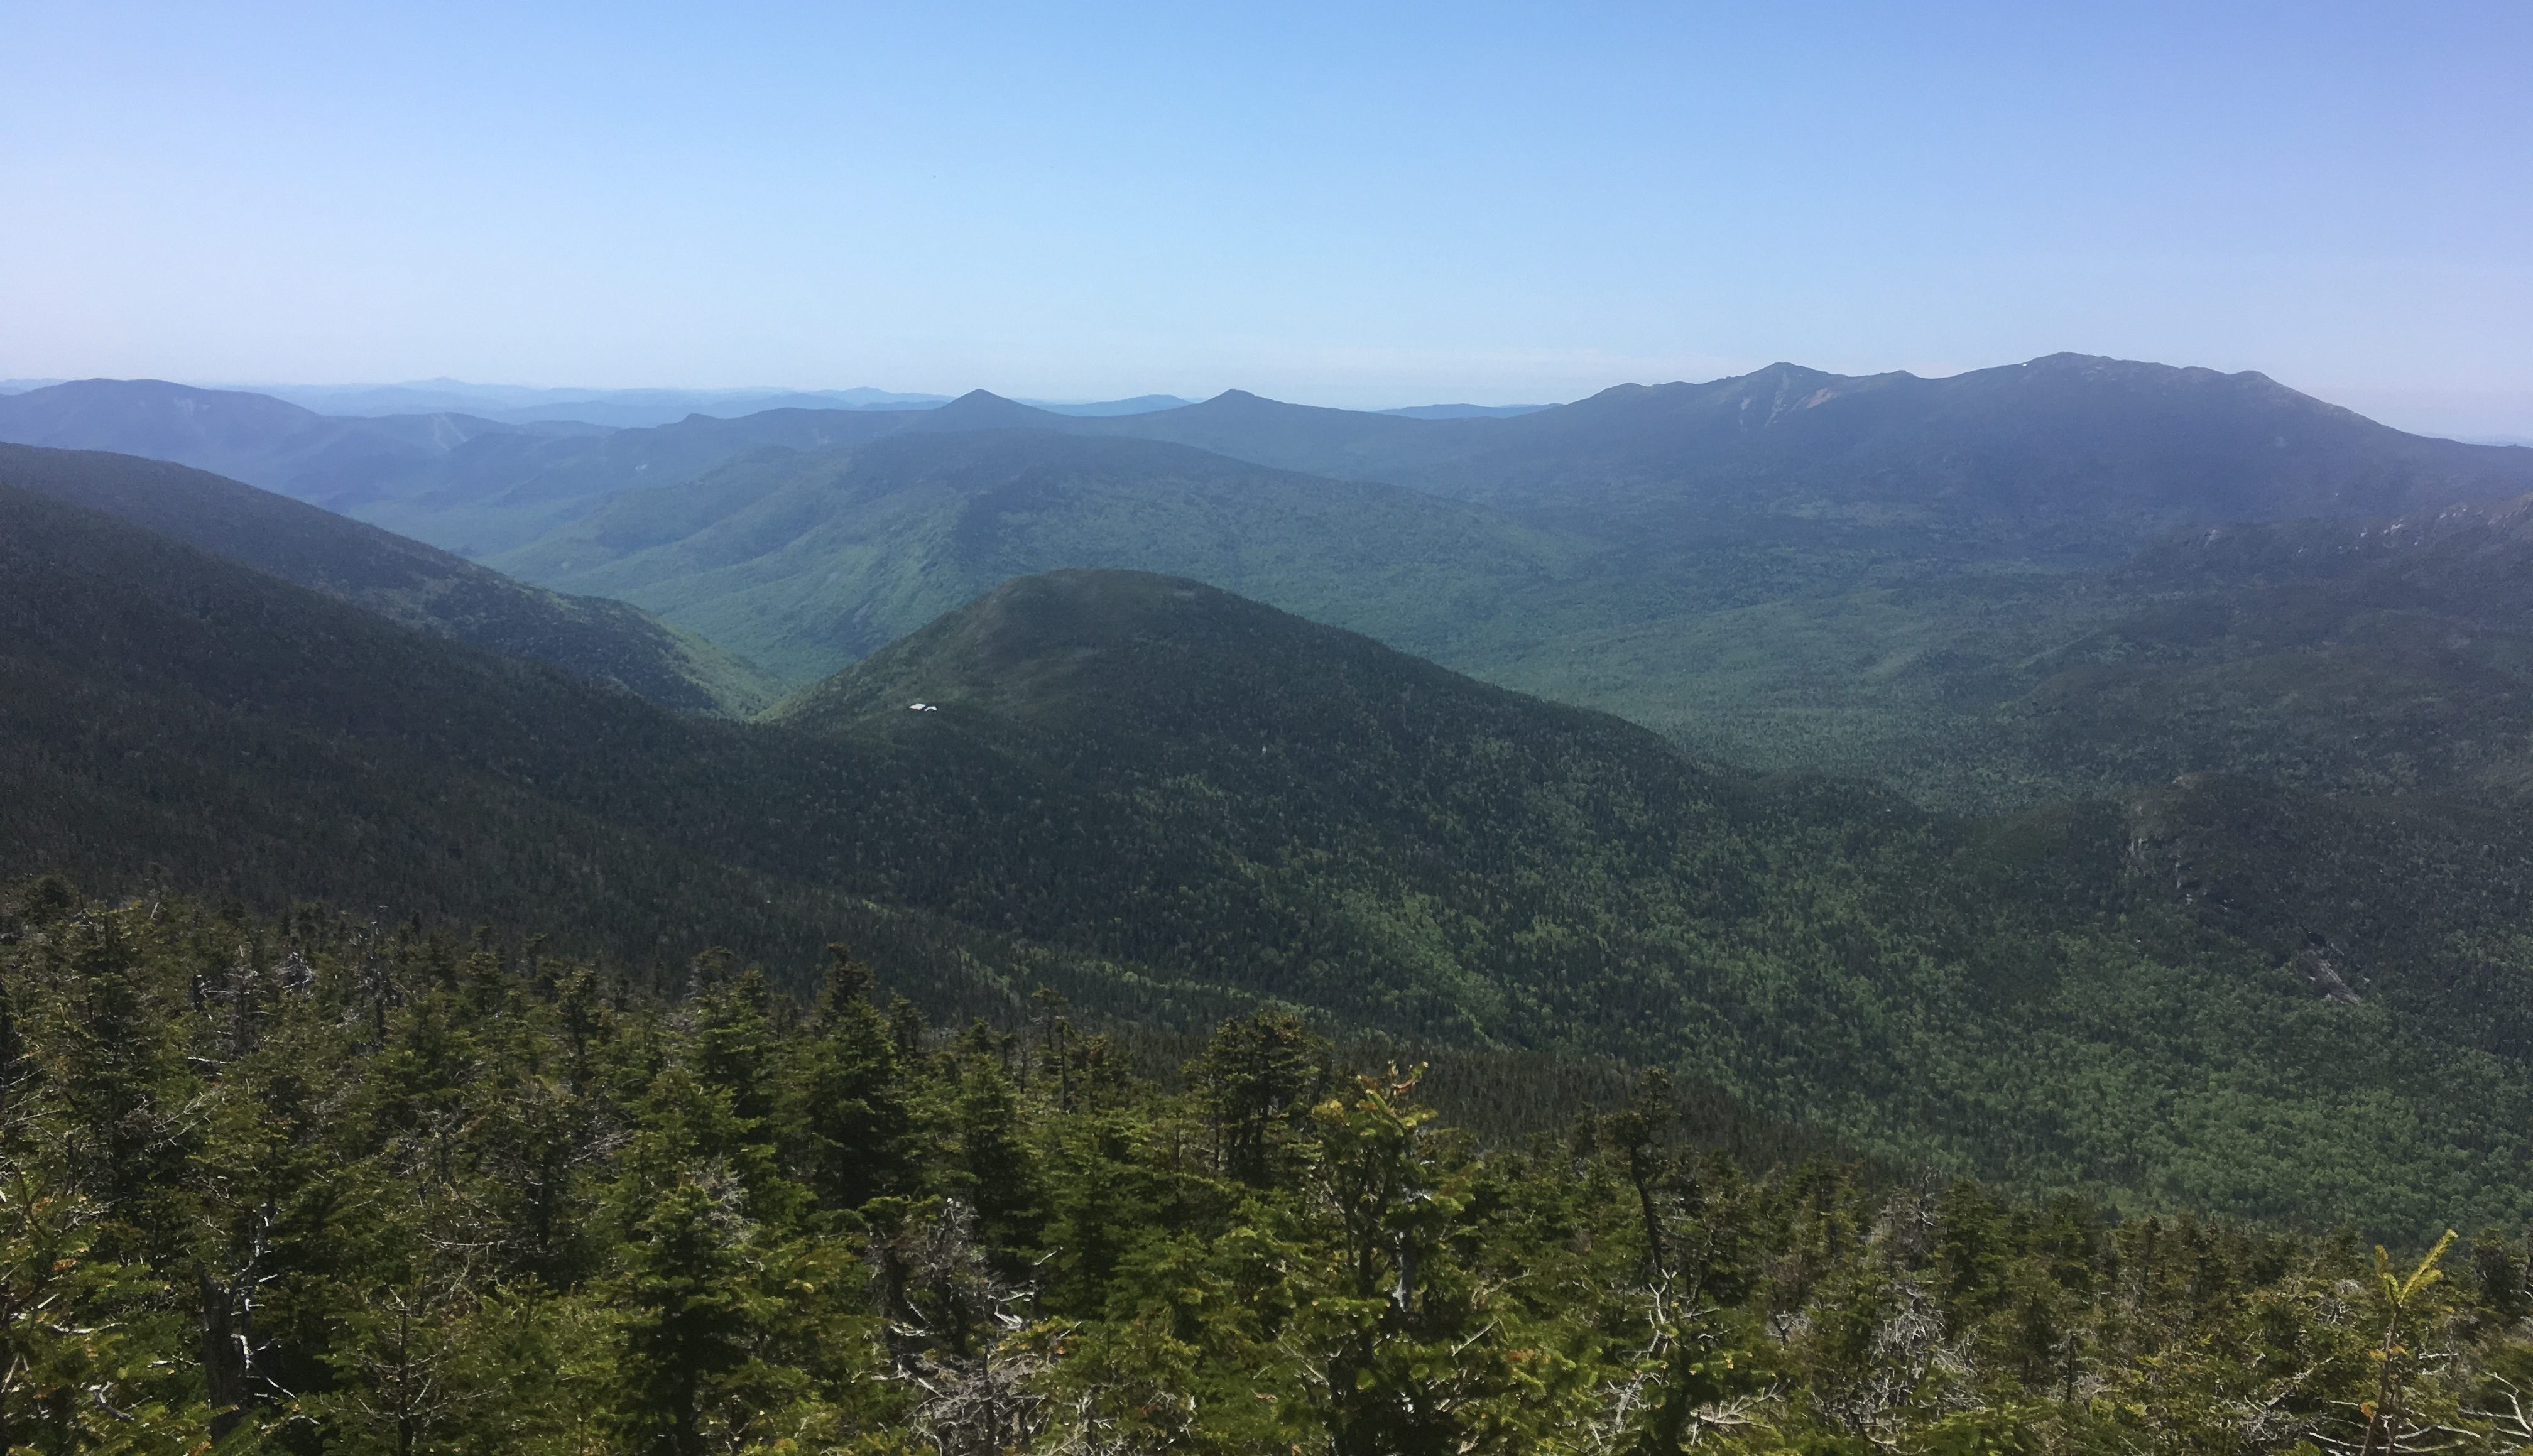 Galehead Mountain Hiking Trail Guide: Map, Trail Descriptions, Pictures & More